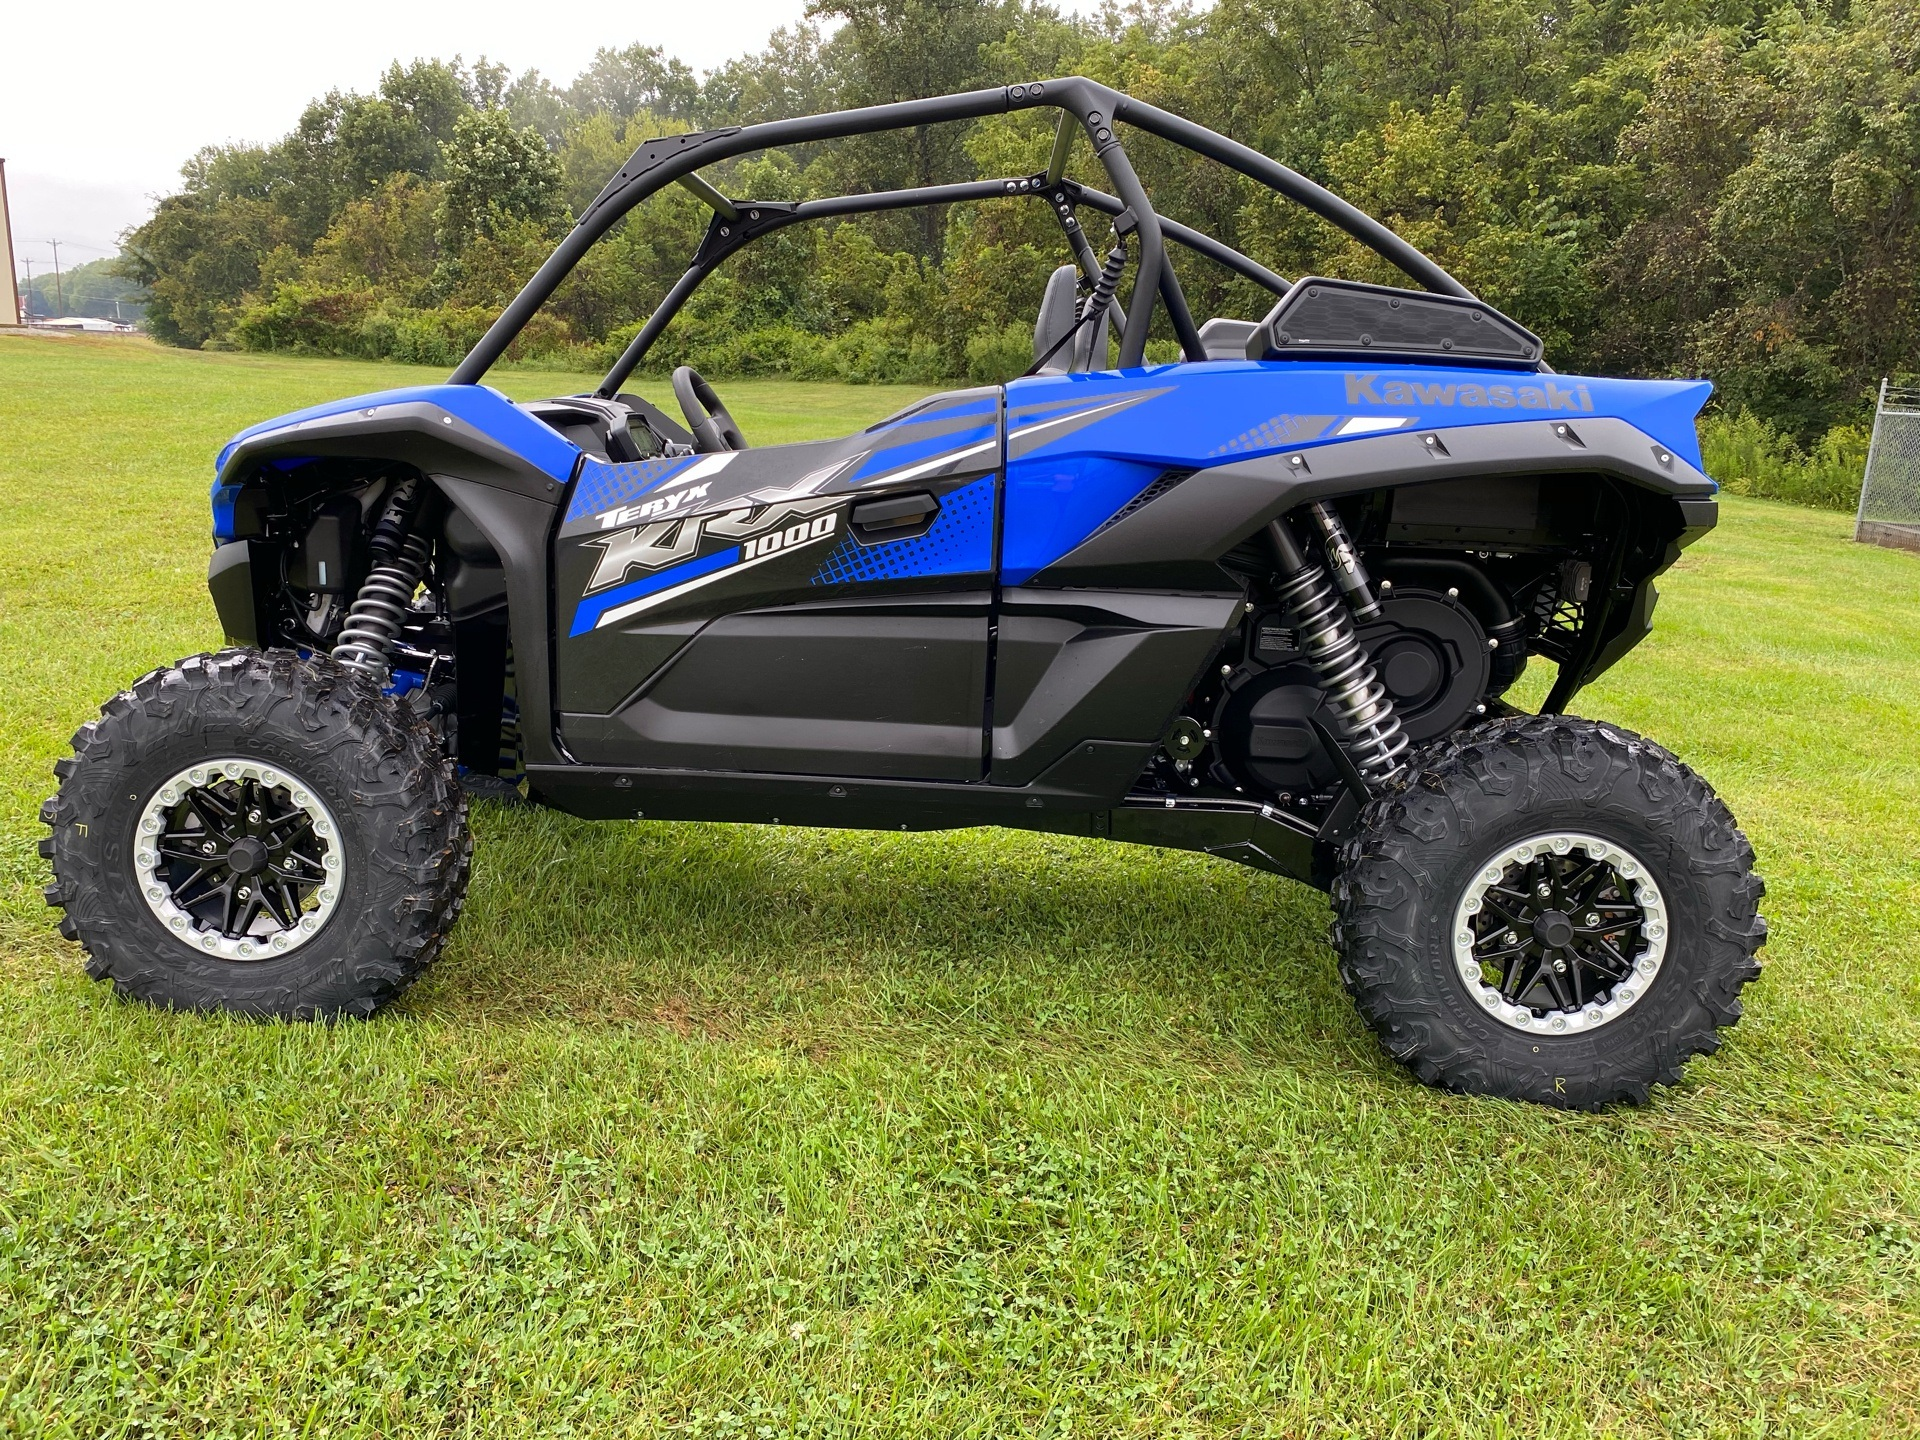 2021 Kawasaki Teryx KRX 1000 in Statesville, North Carolina - Photo 2